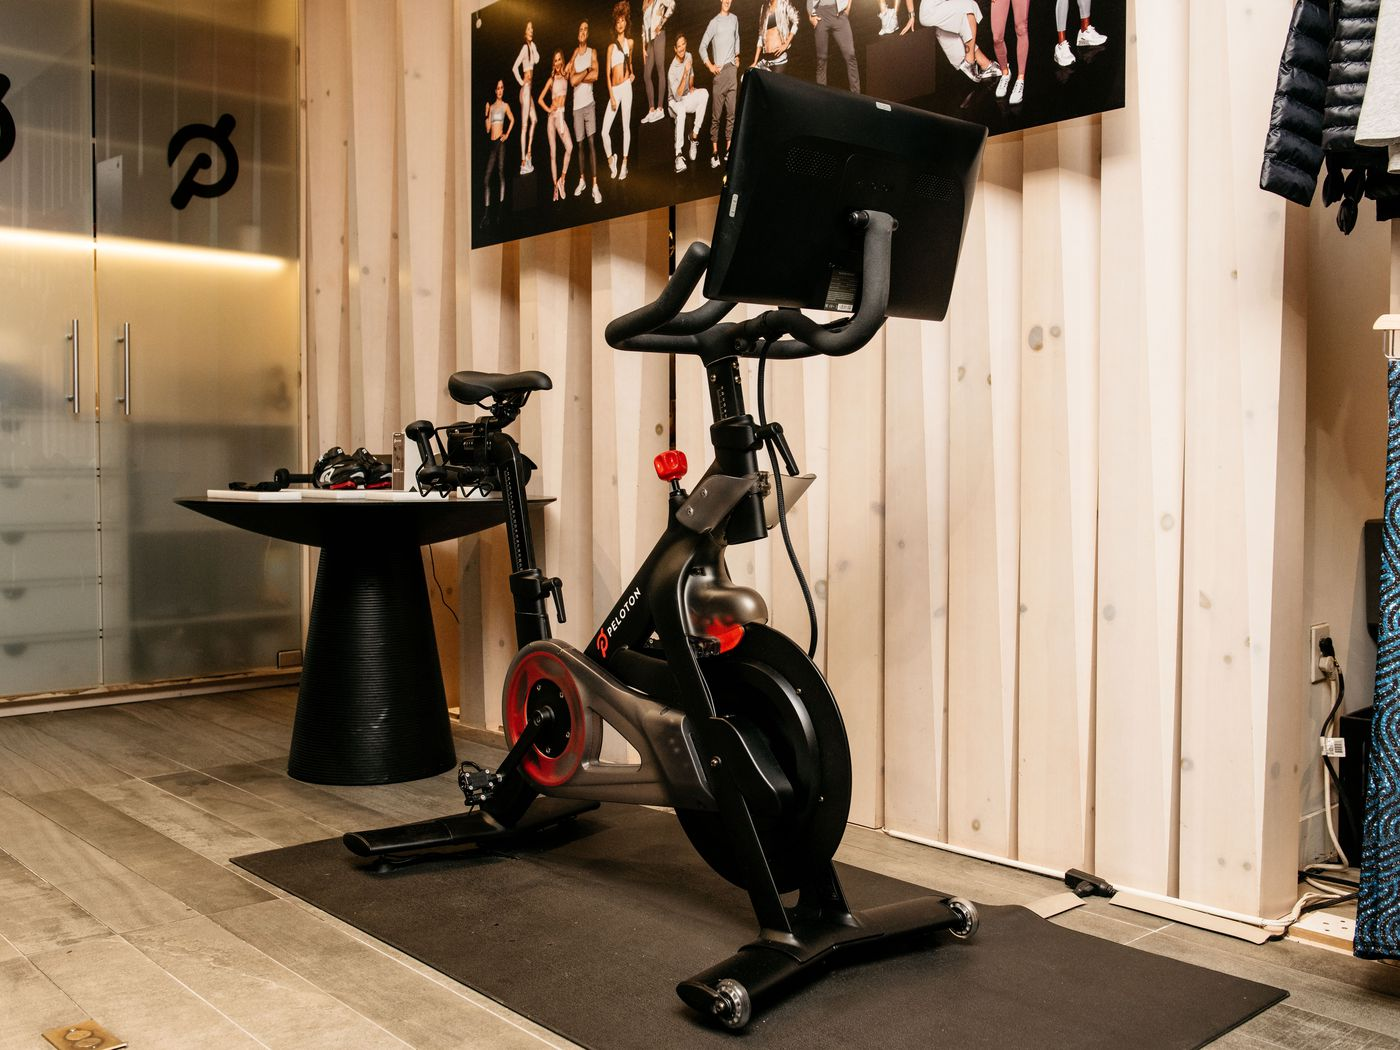 Peloton Bike Review How The Pandemic Changed My Mind About Peloton Vox